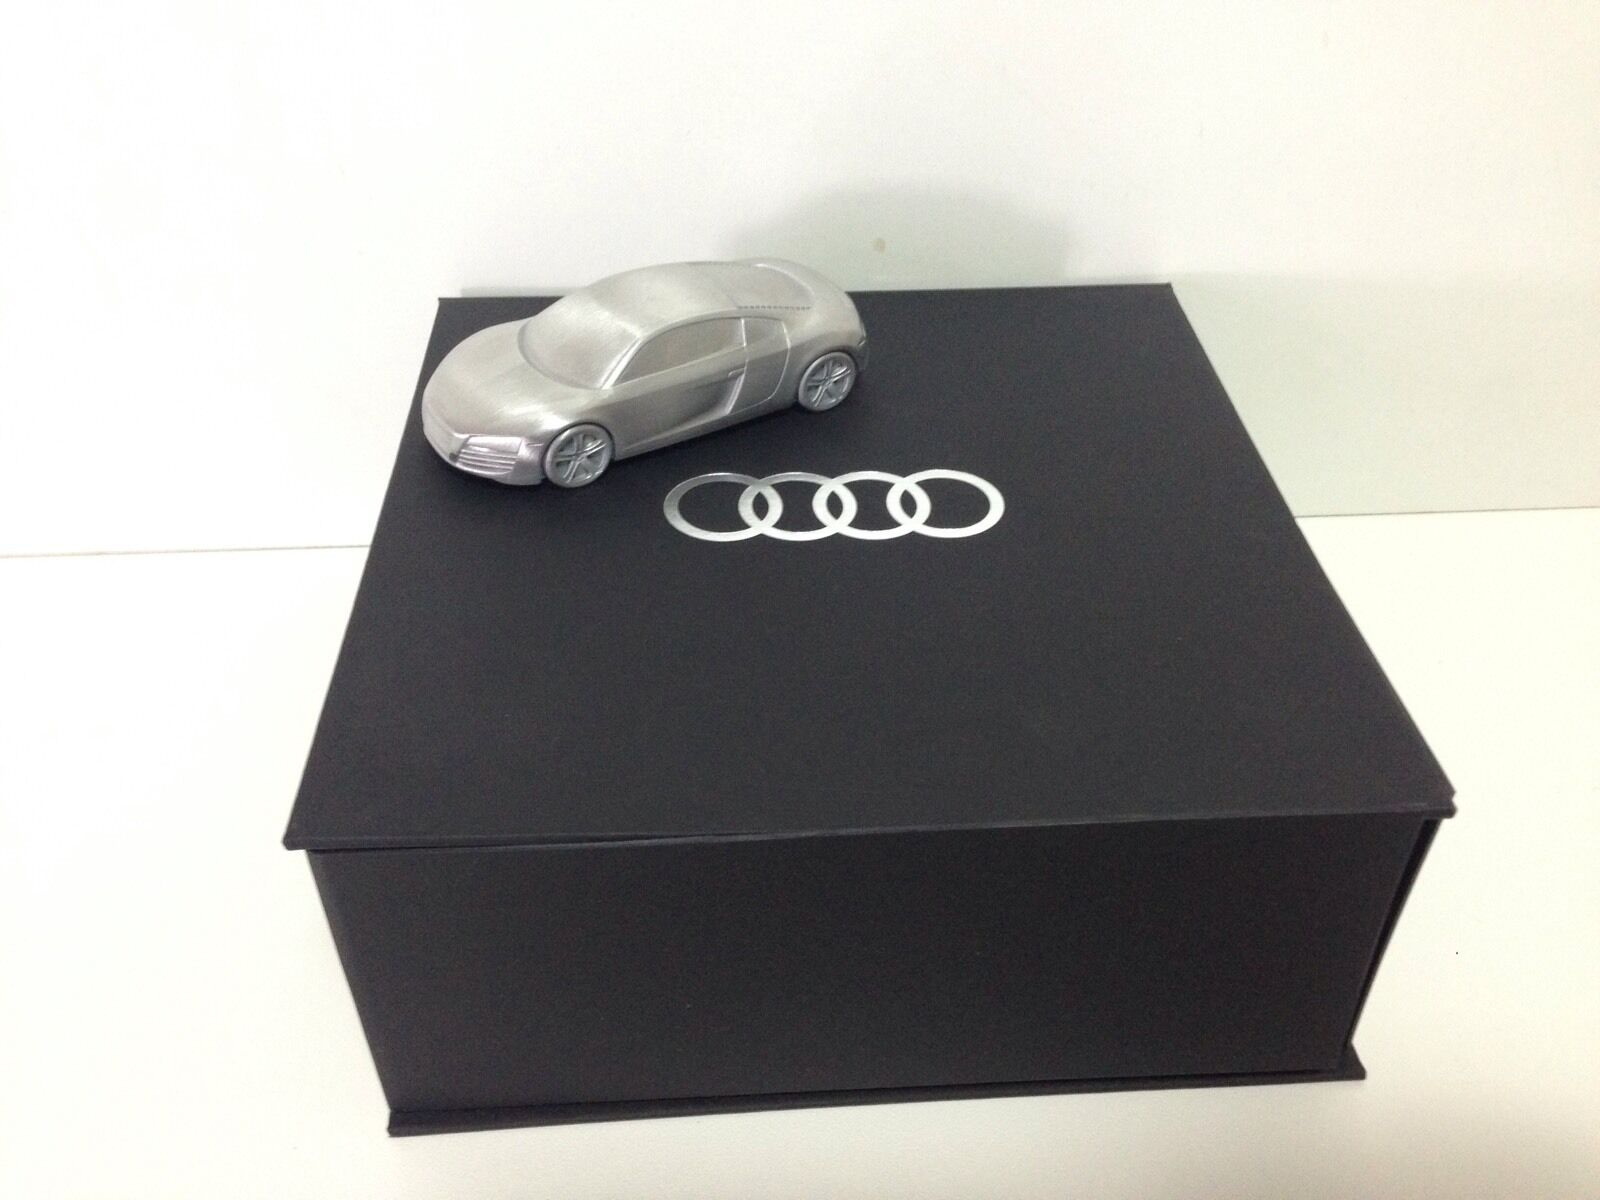 AUDI R8 Maquette 1 43 Promotional Alluminium  Limited Edition Very Rare